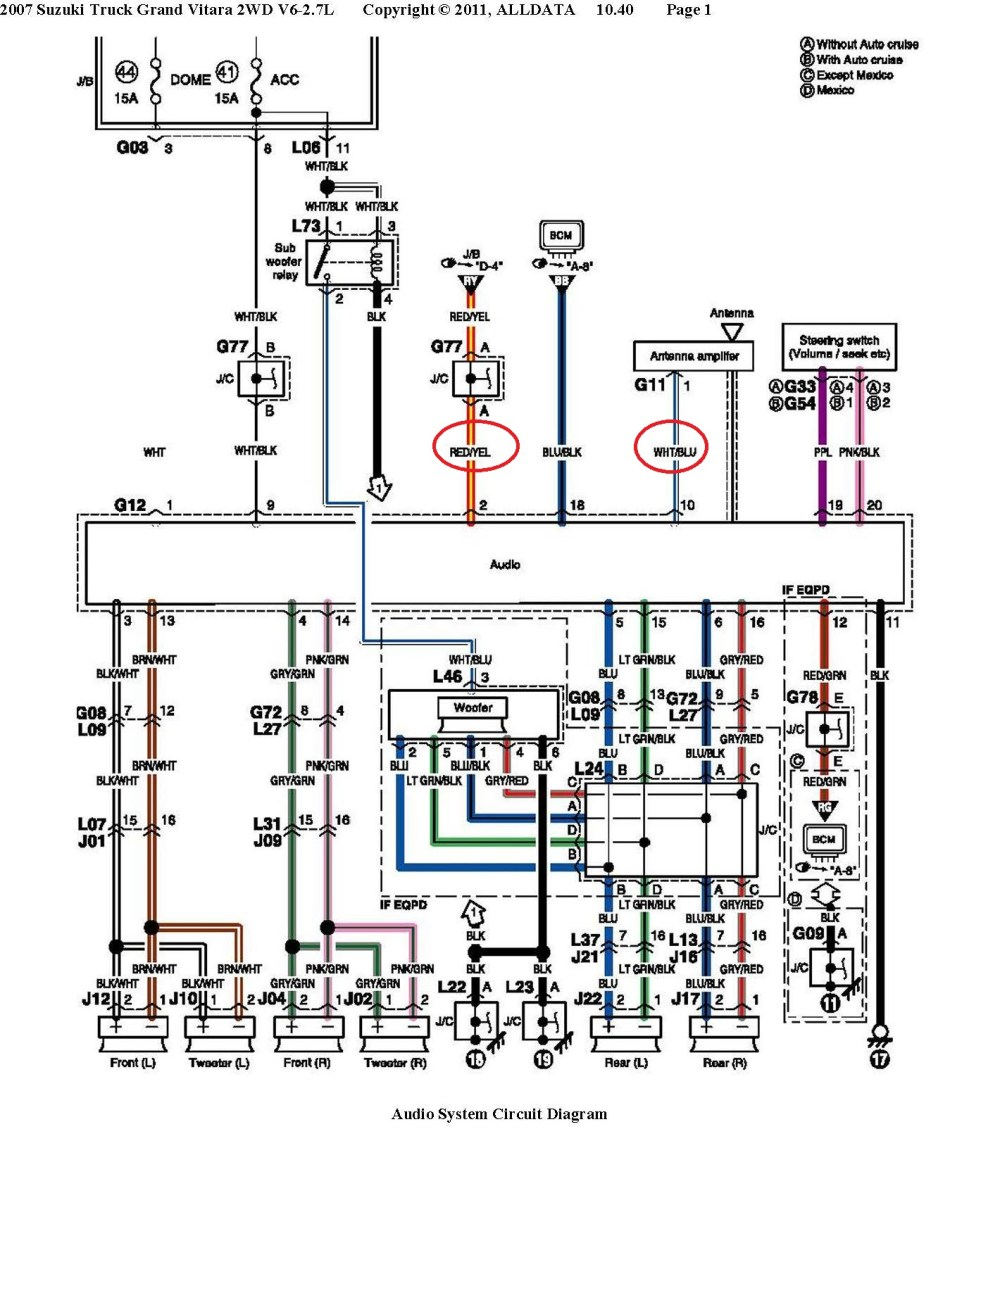 medium resolution of suzuki alto electrical wiring diagram my wiring diagram suzuki alto electrical wiring diagram suzuki alto electrical wiring diagram